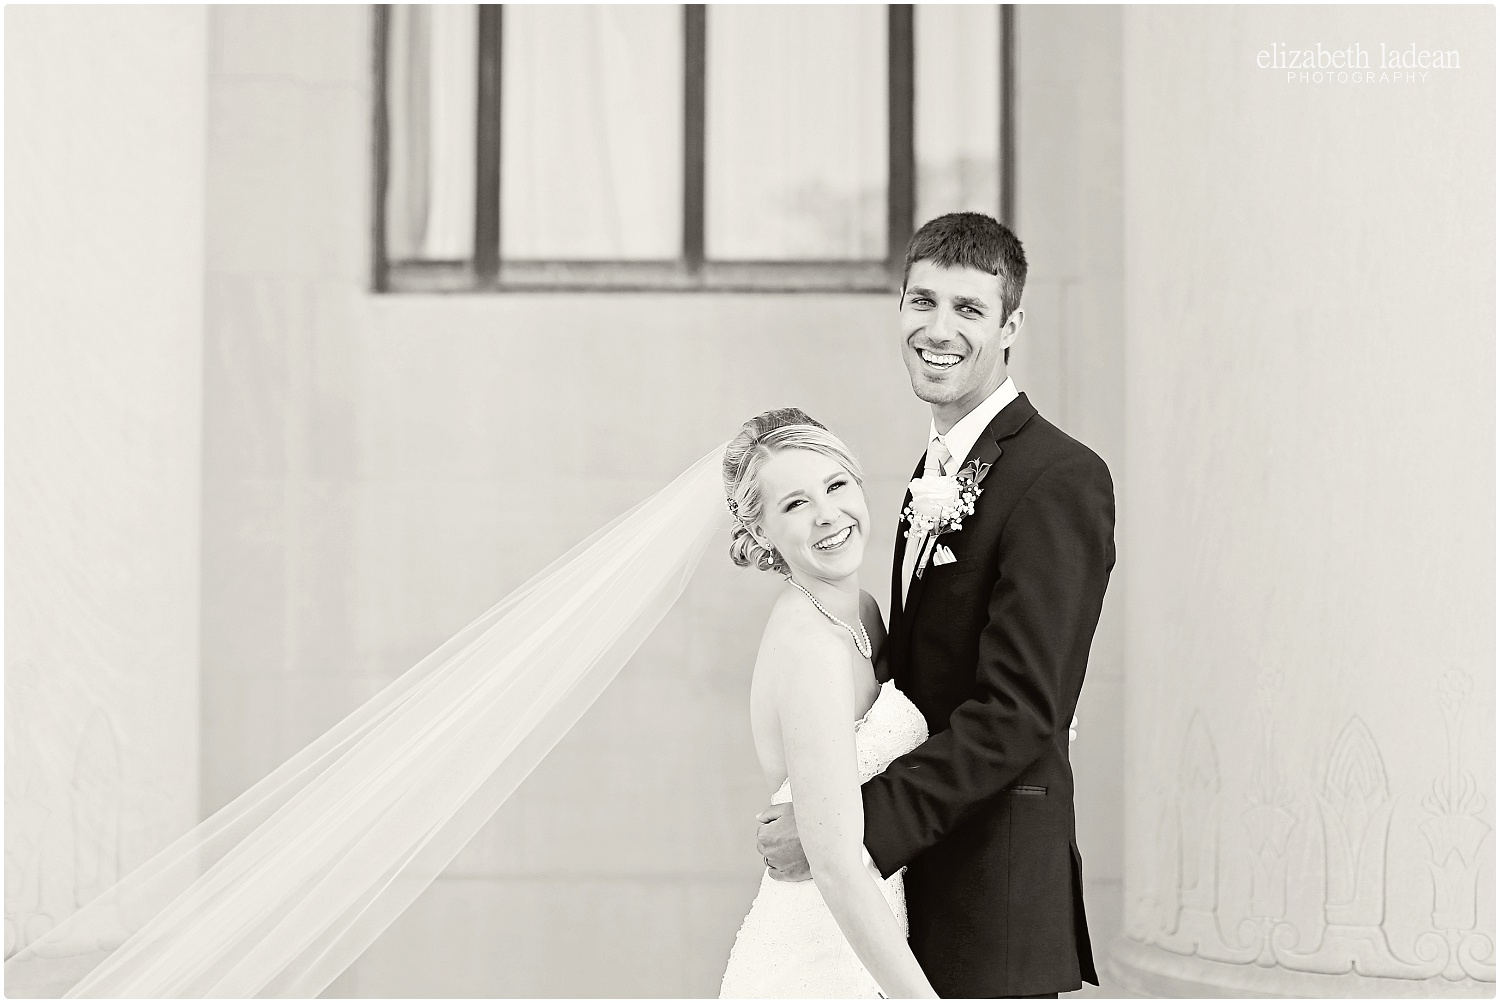 Our-Lady-Of-Sorrows-Heritage-Hall-Nelson-Atkins-KC-Weddings-Elizabeth-Ladean-Photography-A+S516-photo_6625.jpg